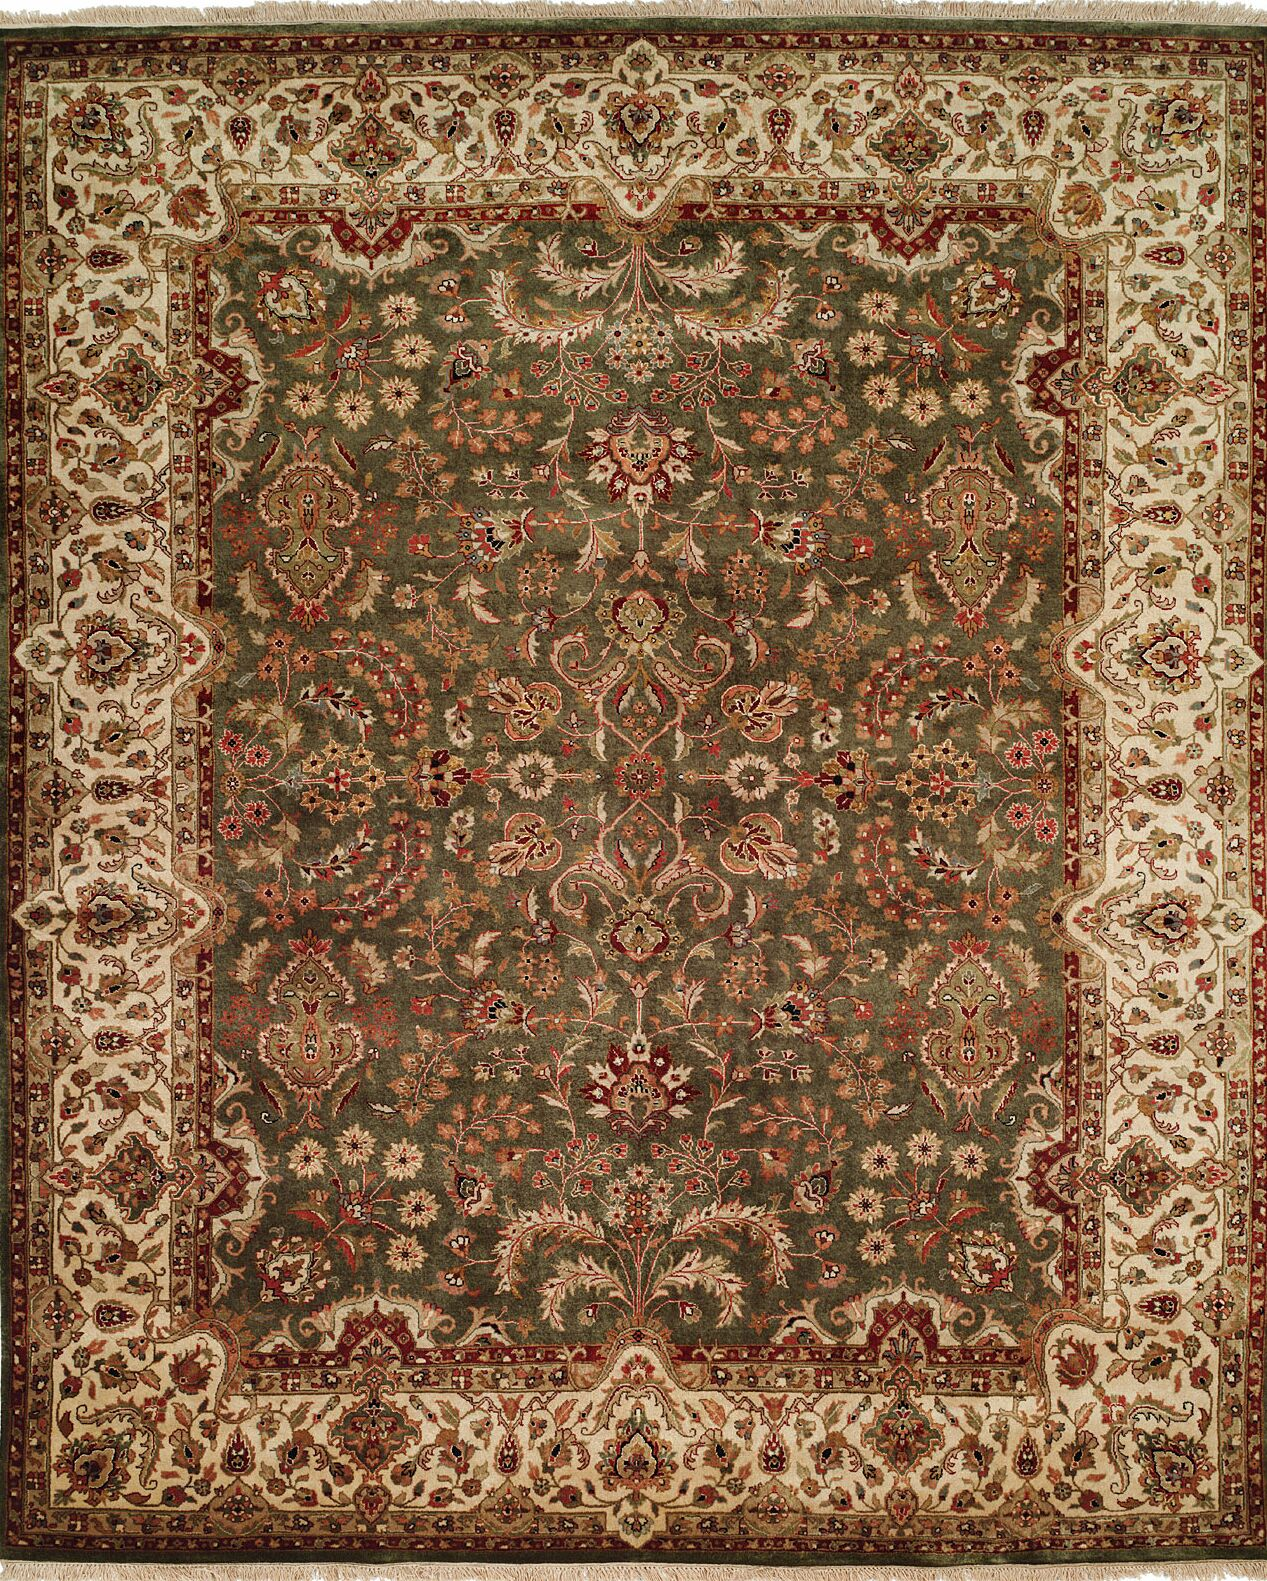 Hand-Knotted Brown/Green Area Rug Rug Size: Round 10'